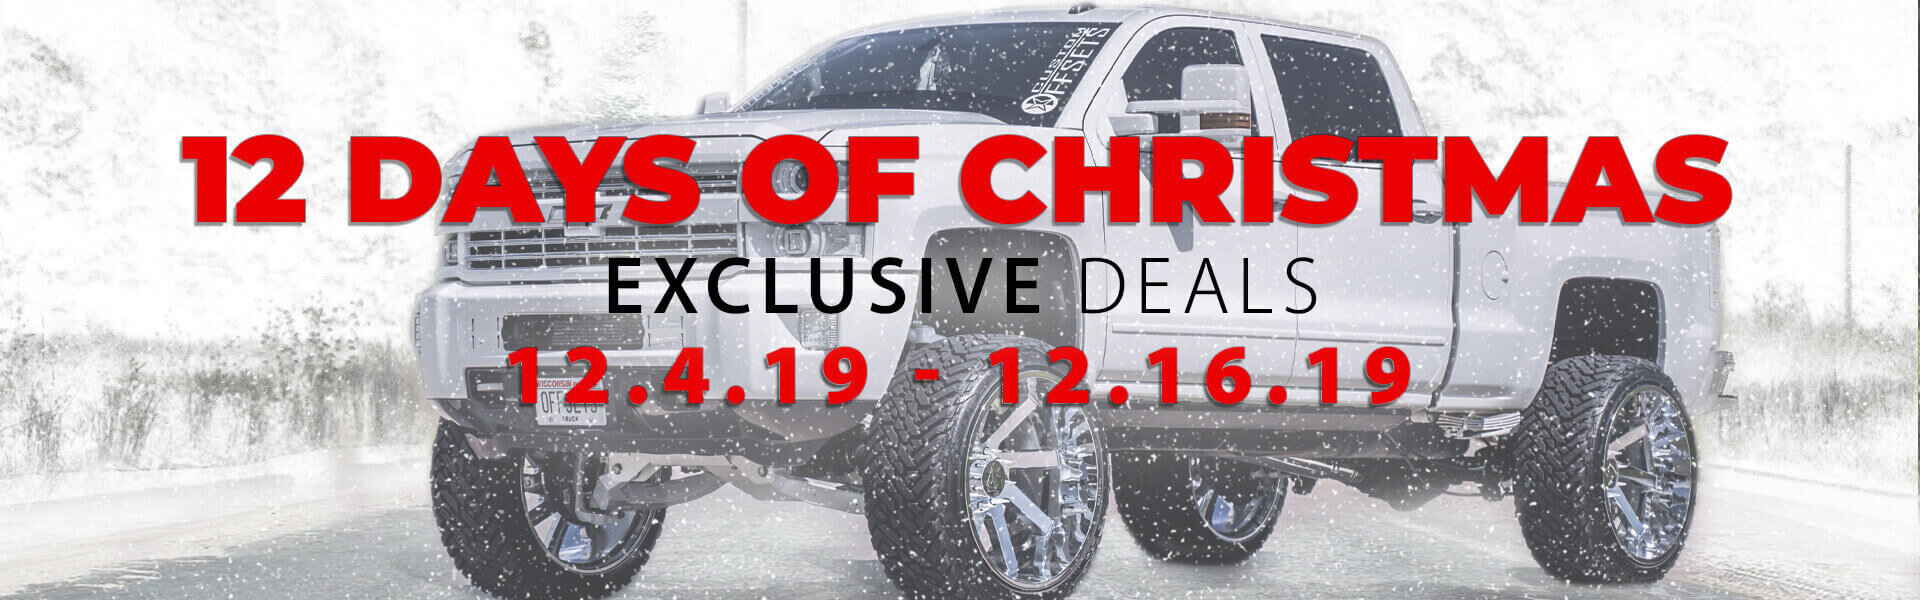 12 Days of Christmas Sale Banner Mobile